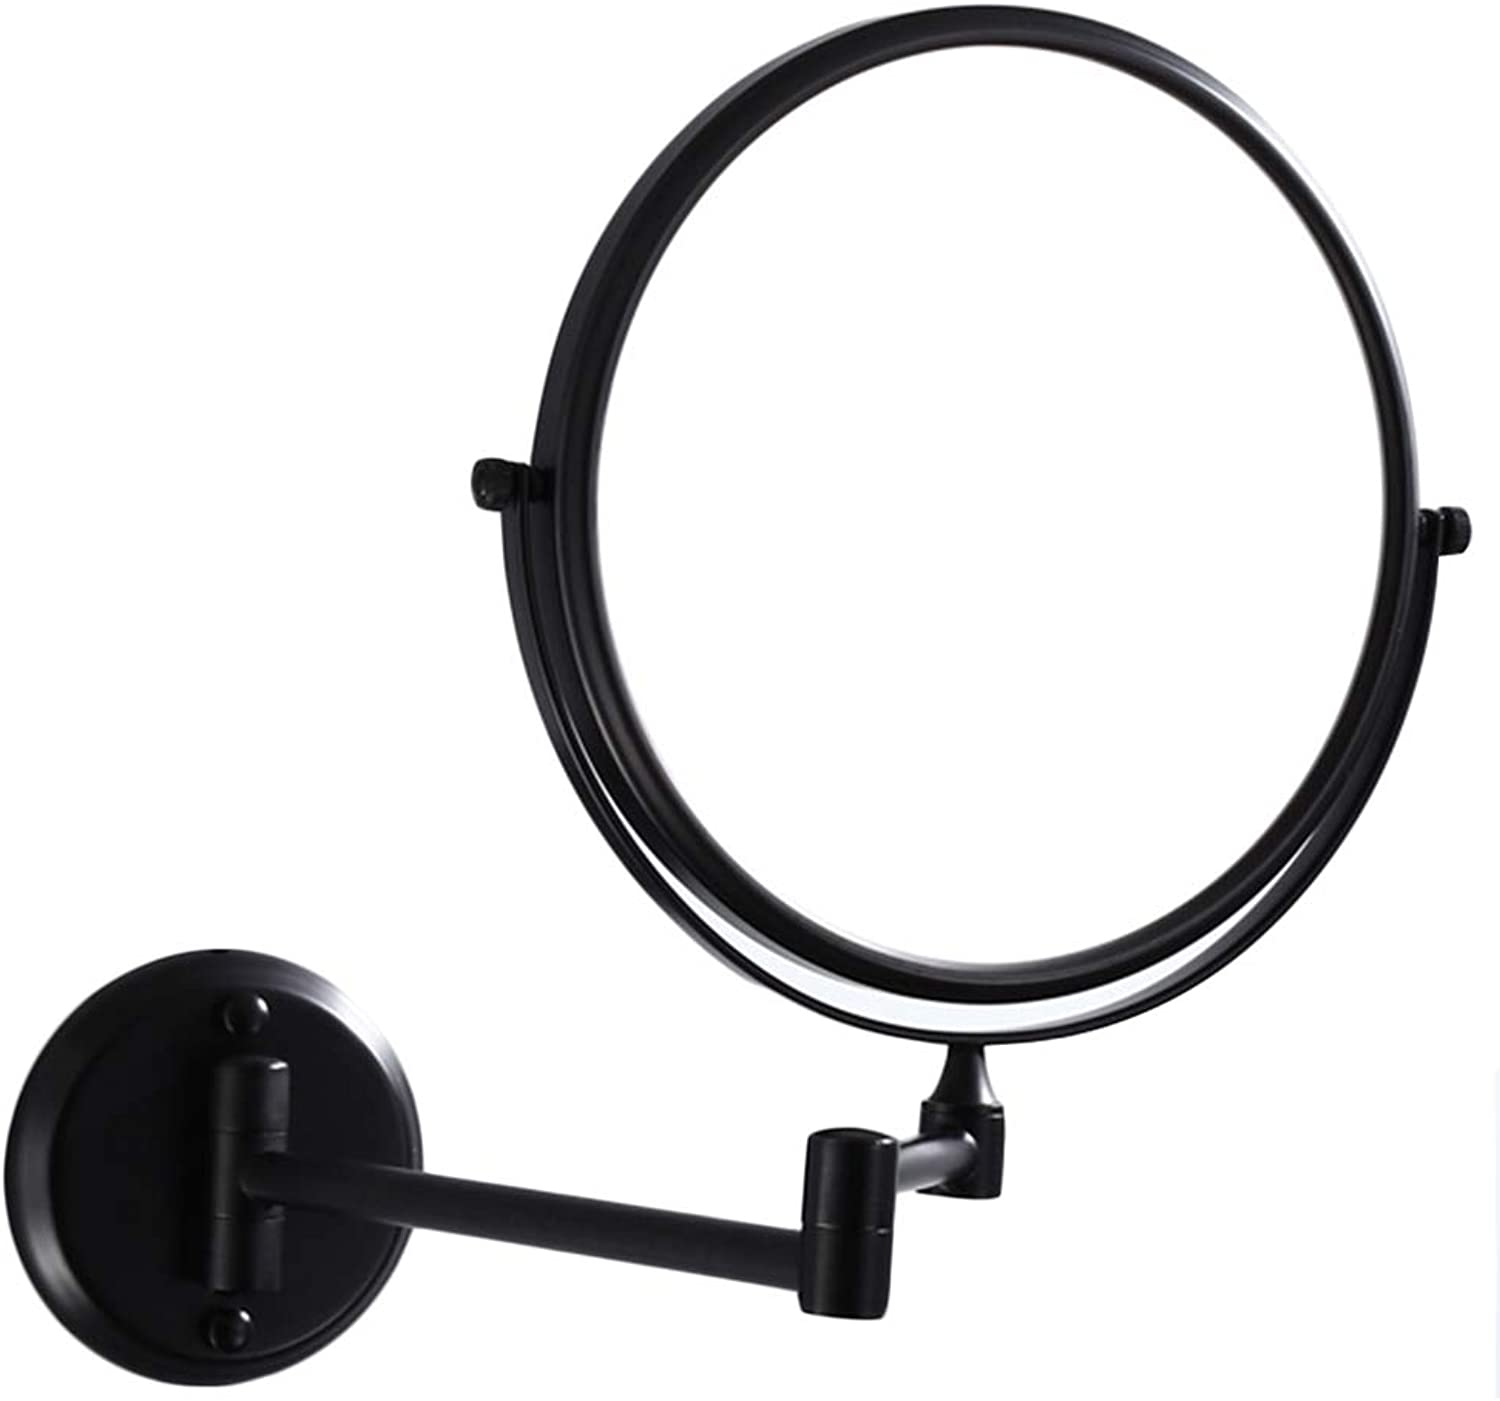 YANZHEN Makeup Mirror Wall-Mounted 3 Times Magnifying Glass Foldable Punch Free 360° redatable Dressing Bathroom Copper, 2 Size (color   Black, Size   15x32cm)